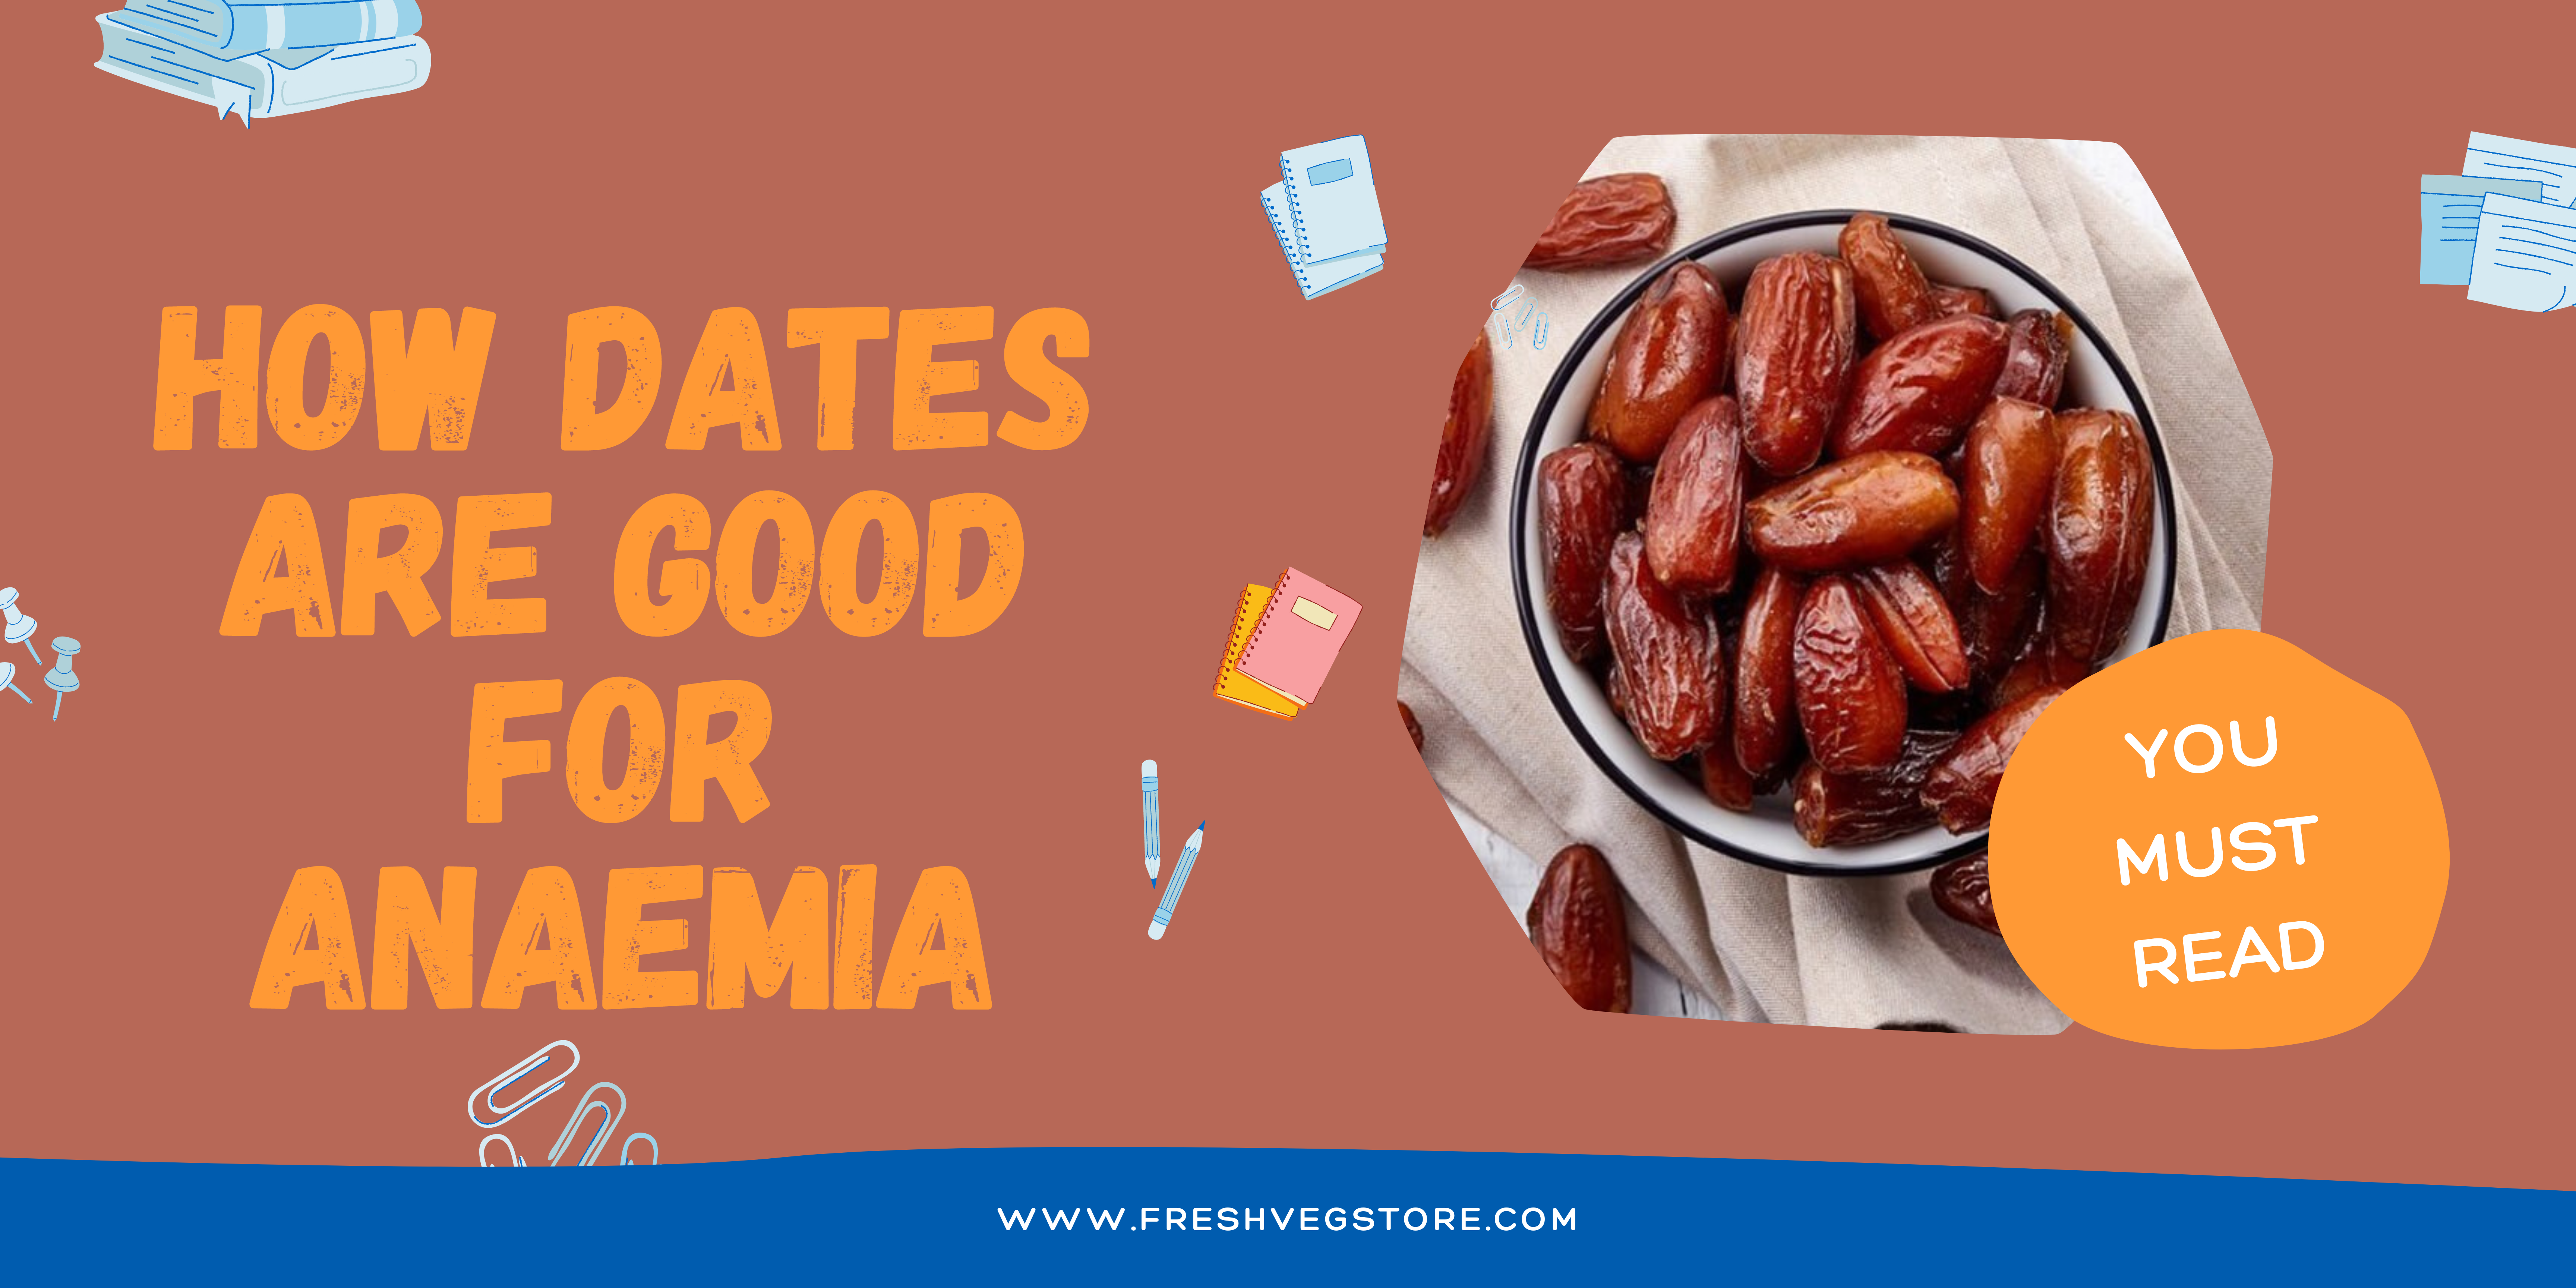 HOW DATES ARE GOOD FOR ANAEMIA